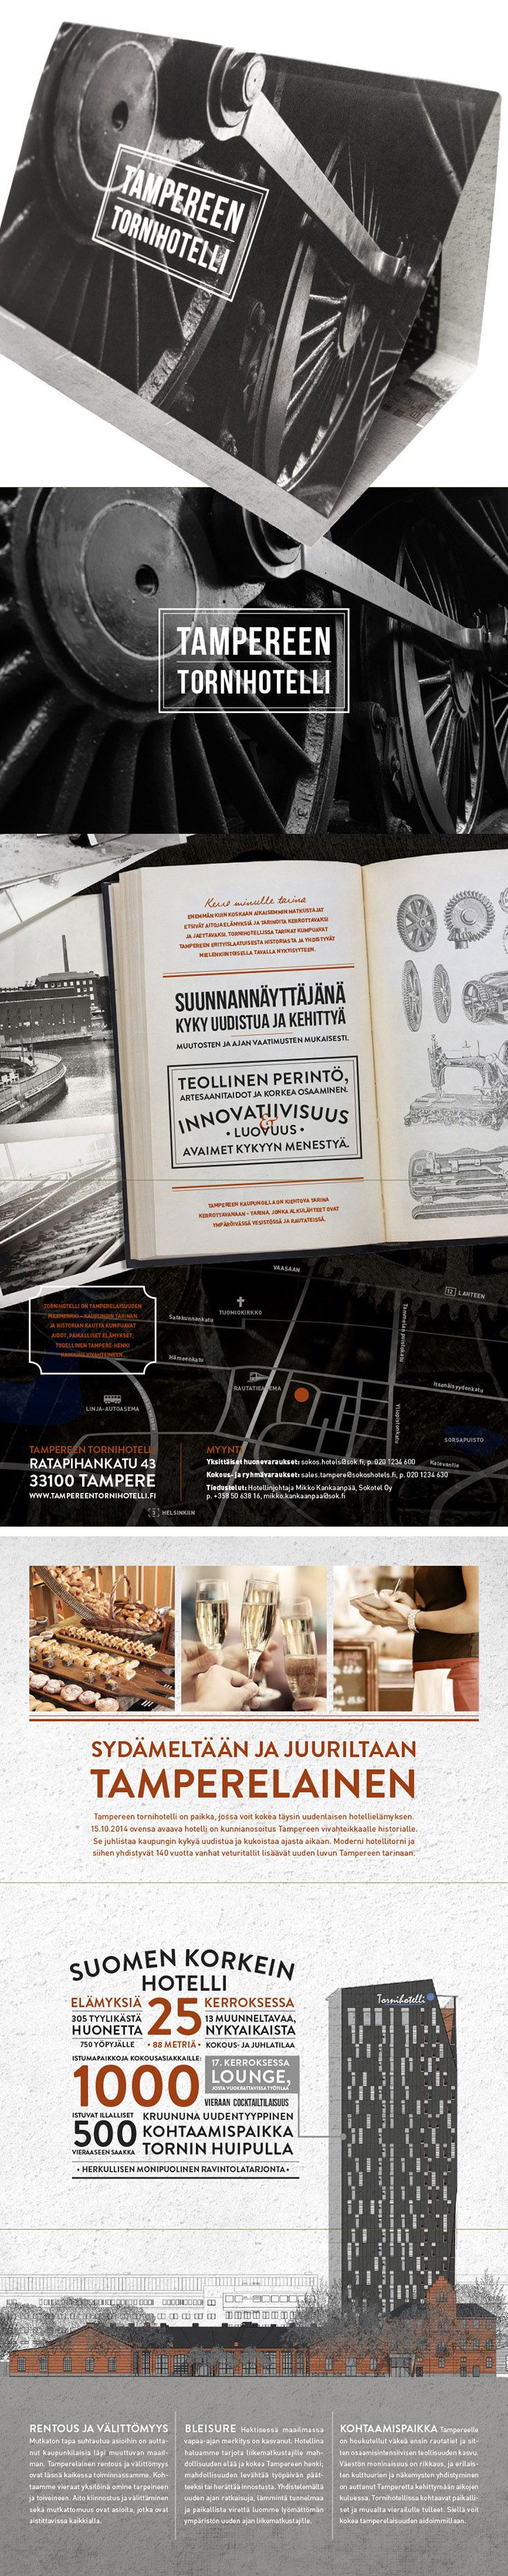 Tampereen Tornihotelli / brochure